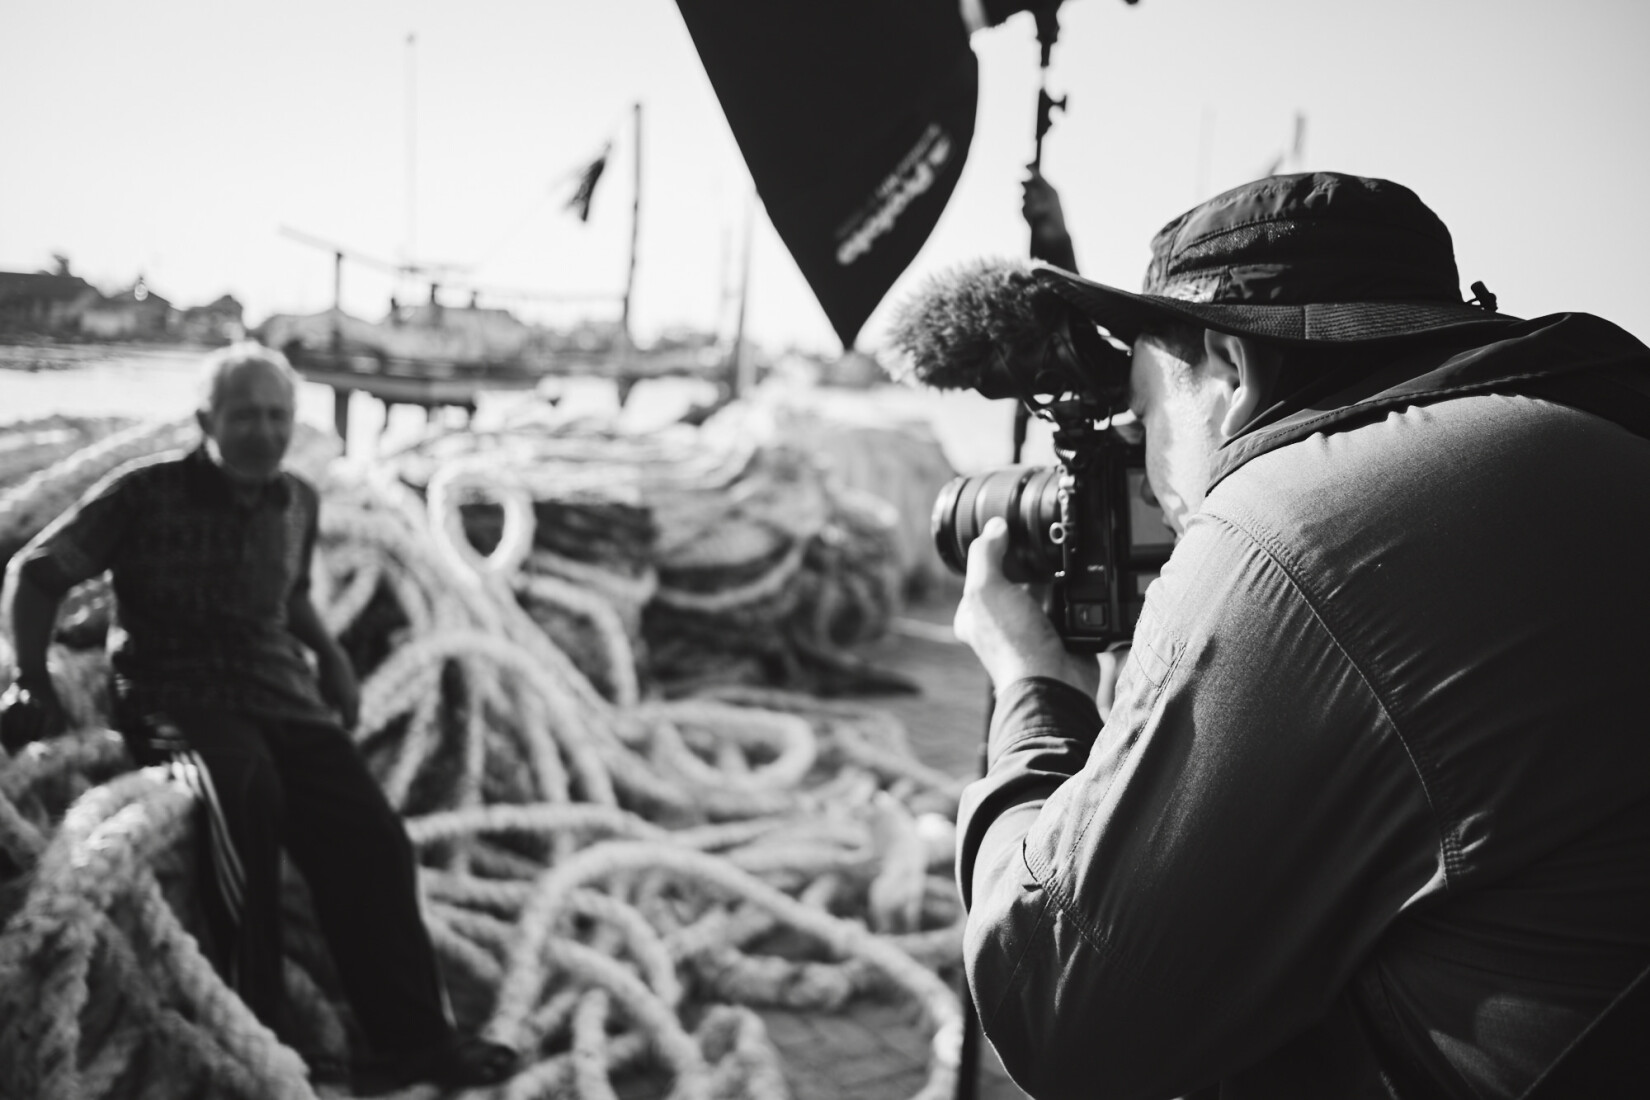 Shooting one of the fishermen, Yono in the harbour.